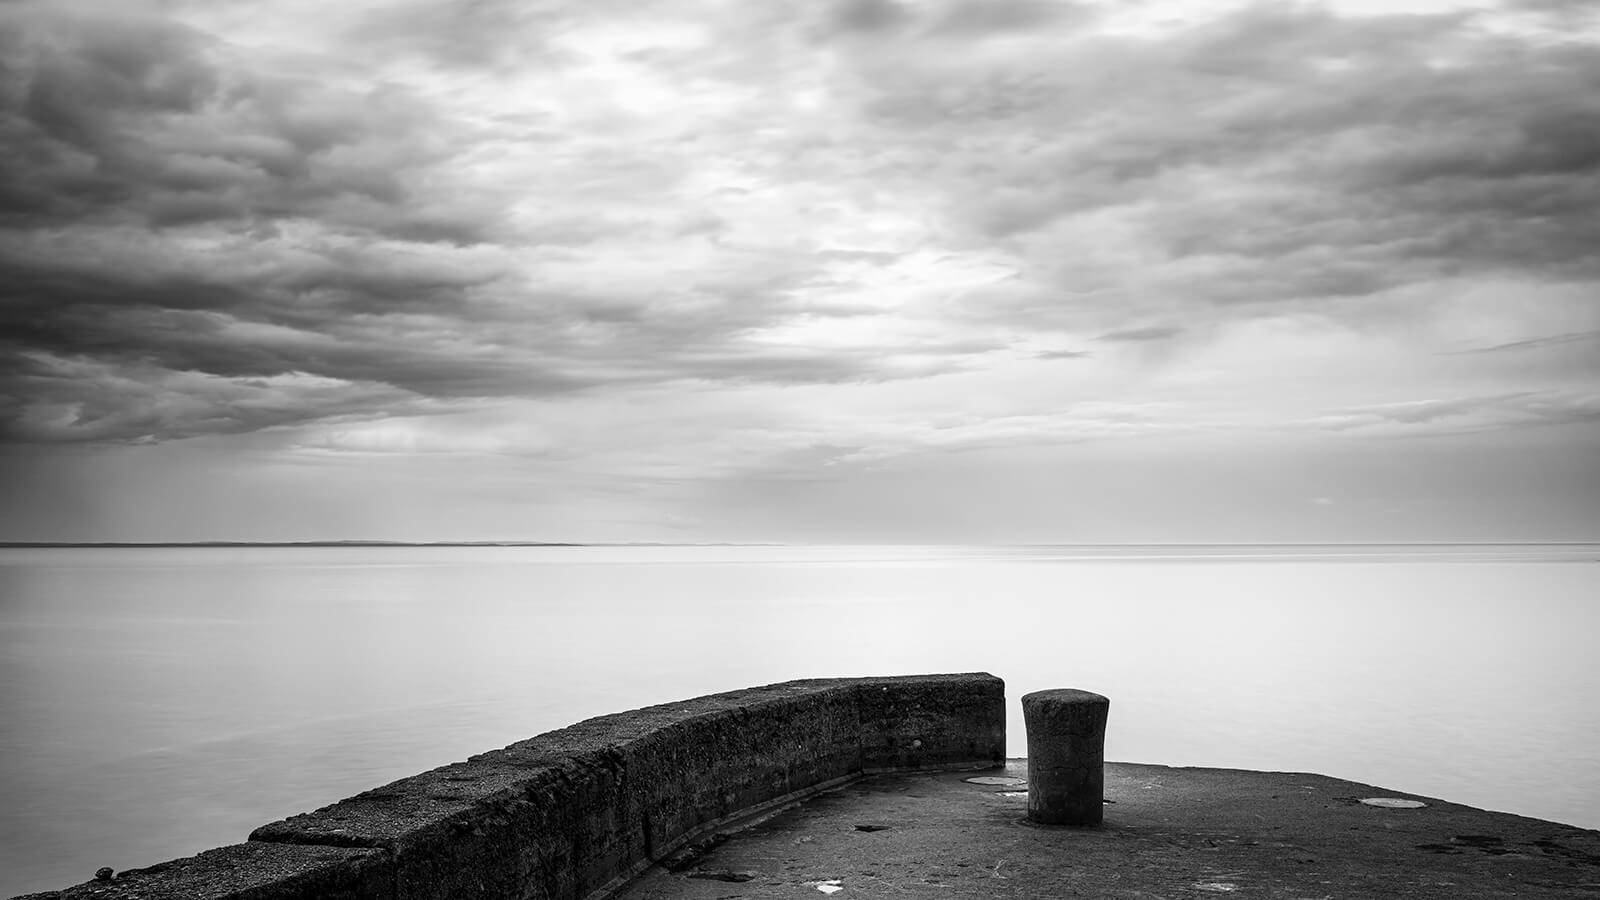 Seaside - Piear in mono by Joakim Jormelin